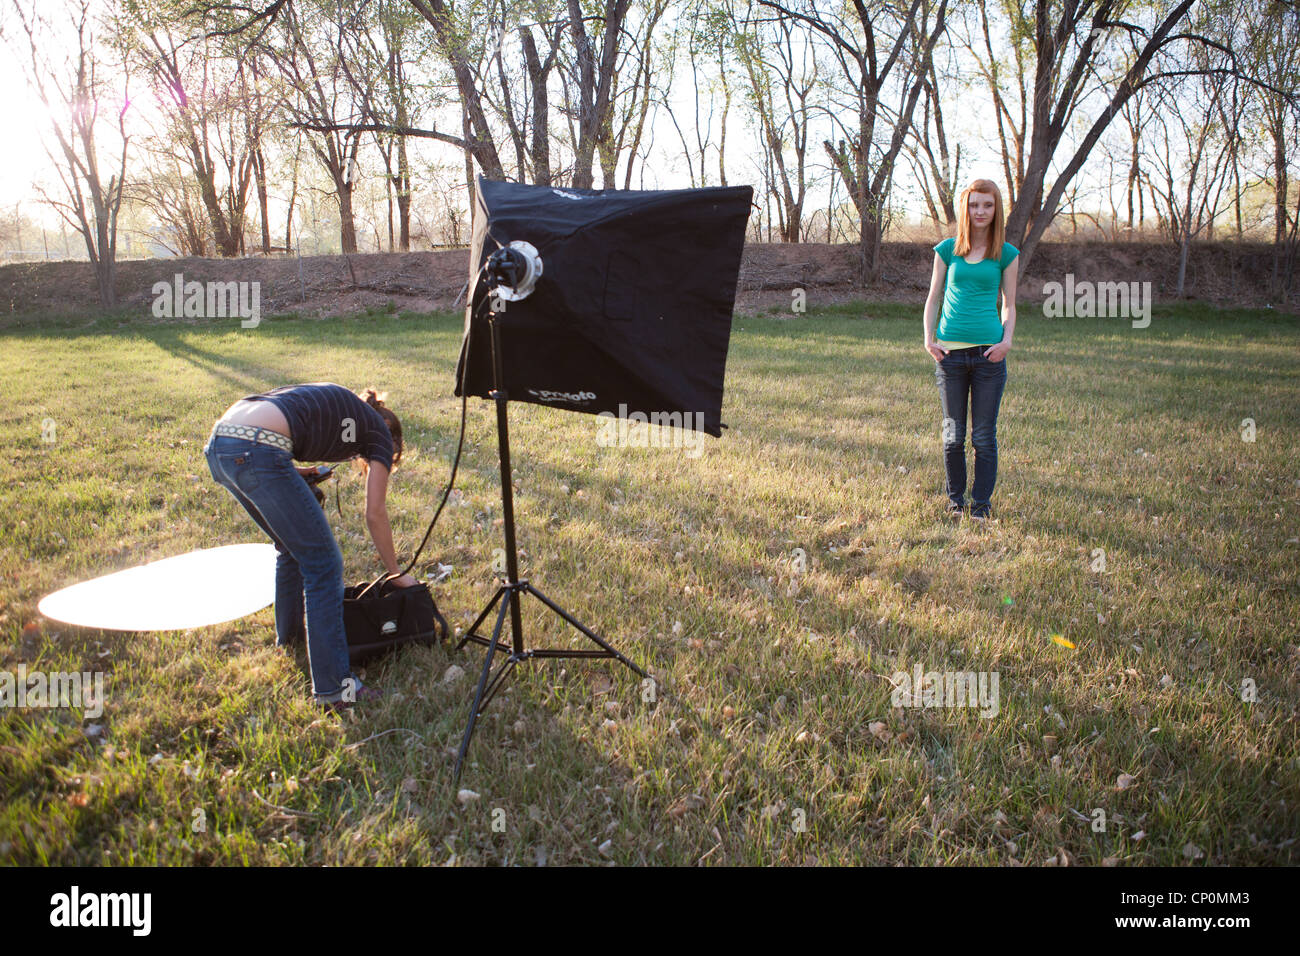 Photo shoot outdoors with teen model in a rural area. - Stock Image